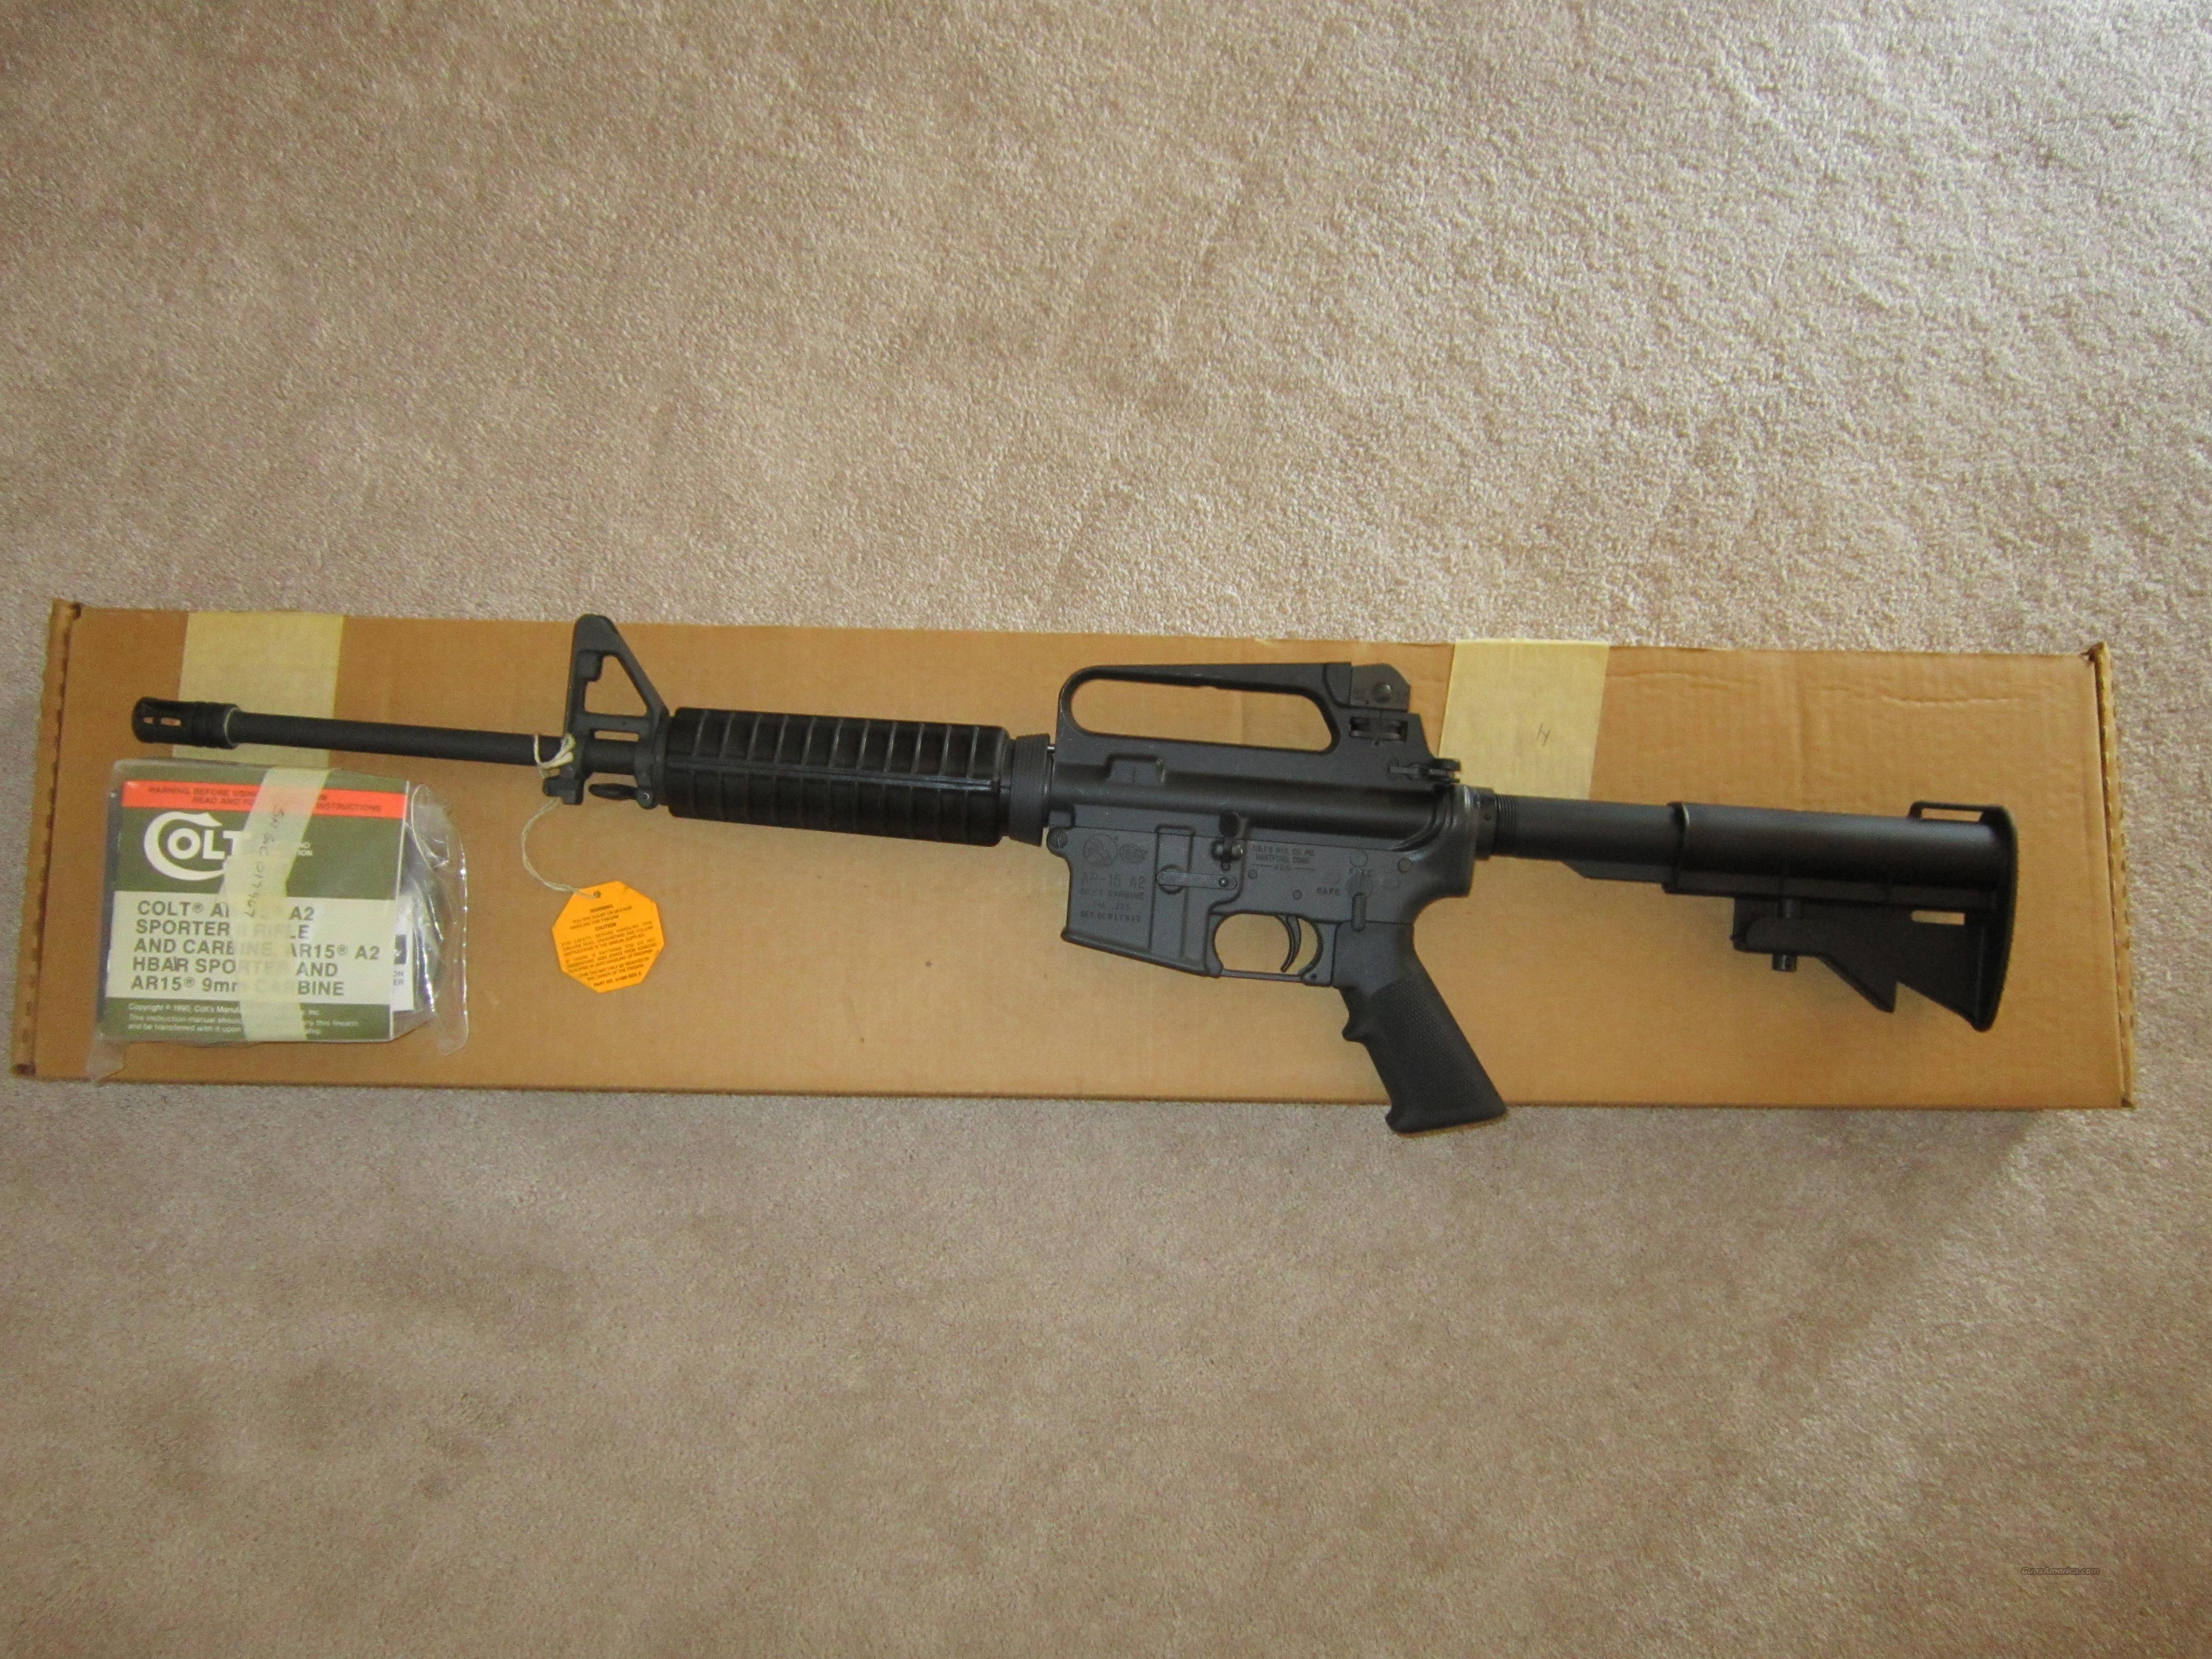 Colt AR-15 A2 CAR Model 6520  Guns > Rifles > Colt Military/Tactical Rifles